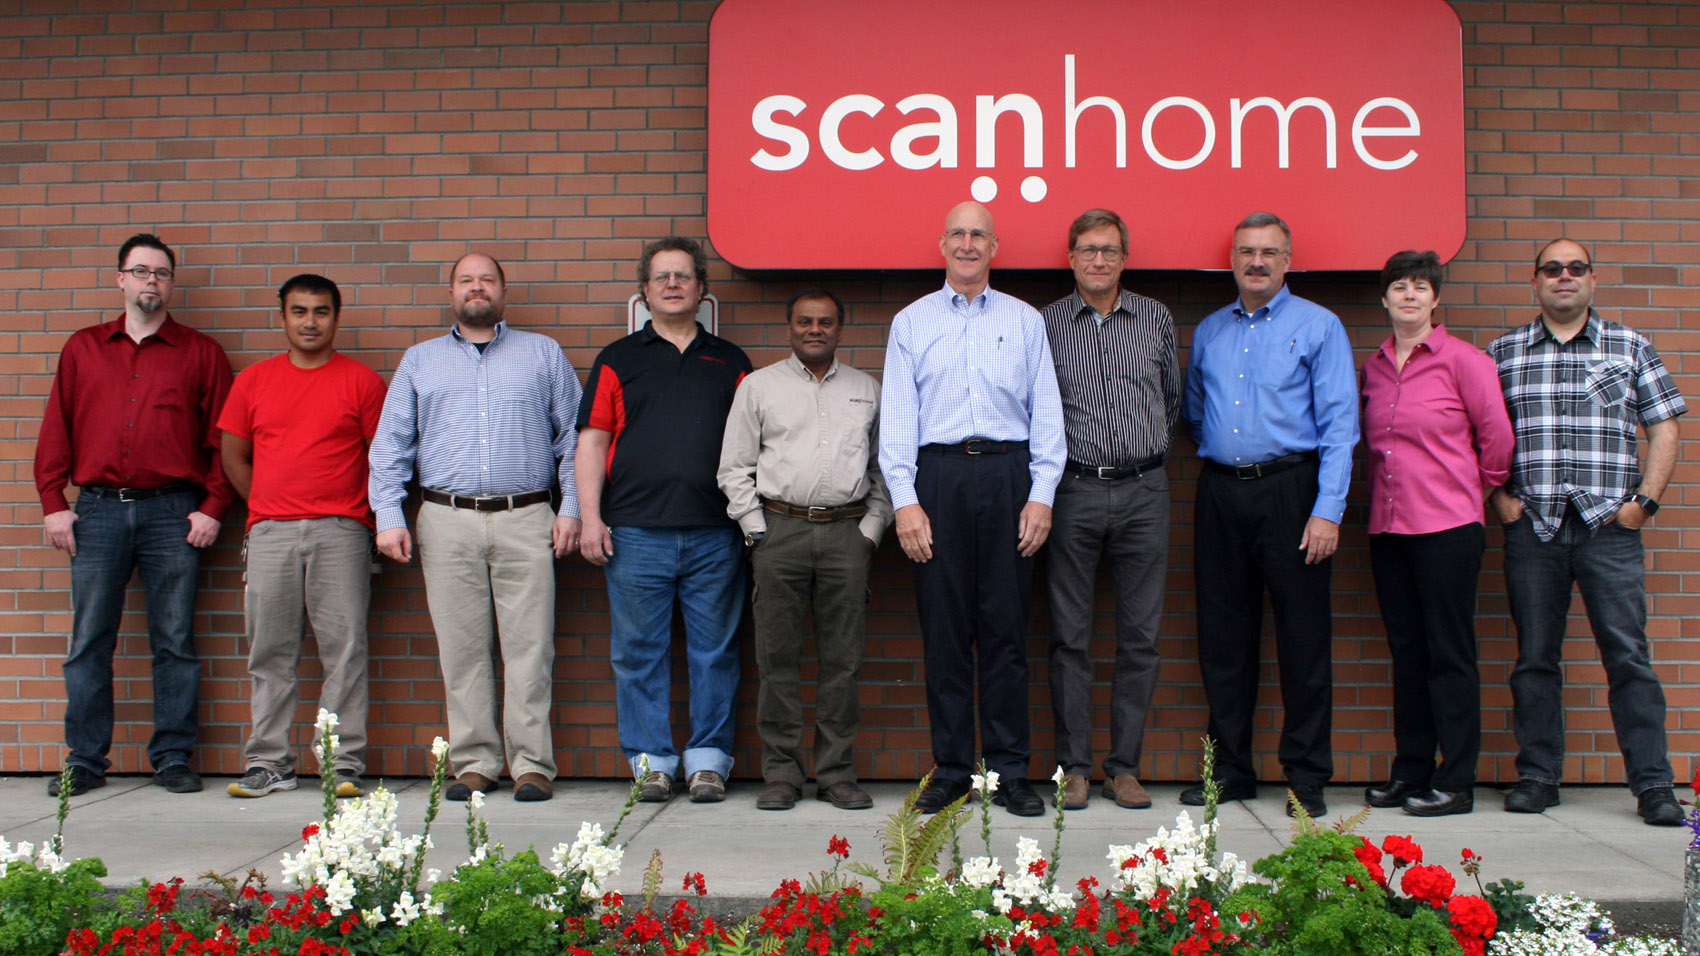 The Scan Home Team